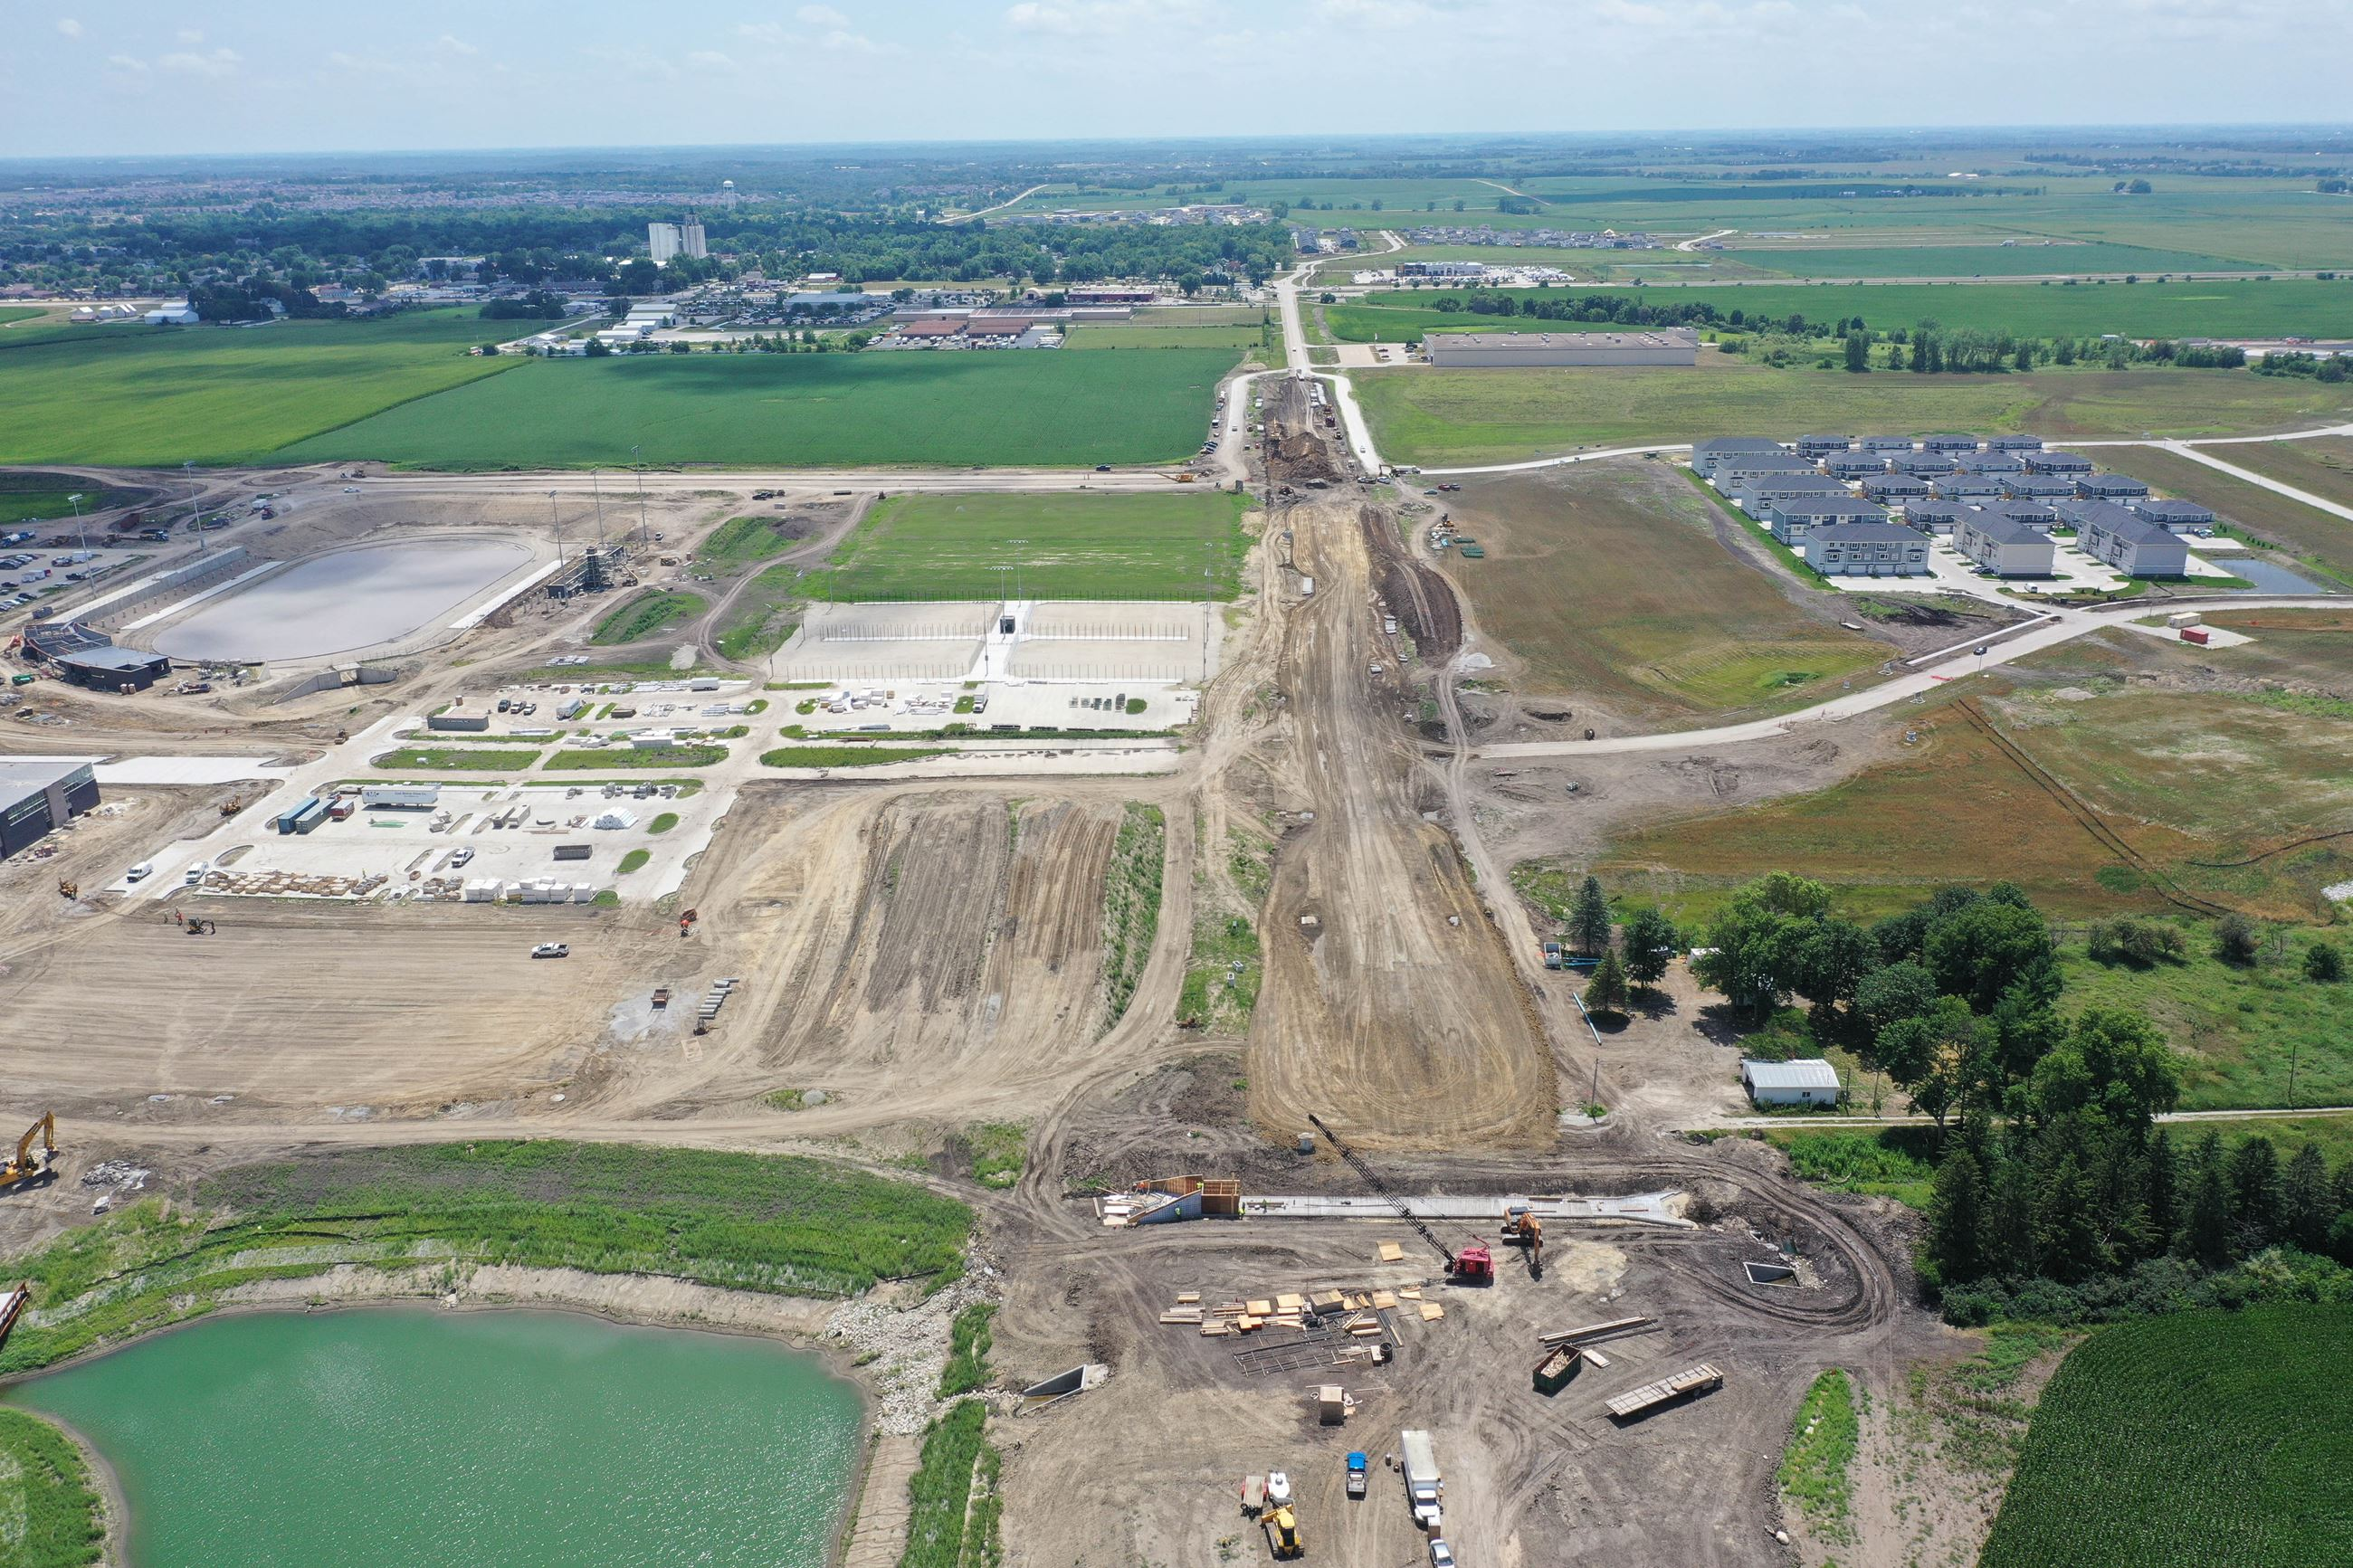 An aerial view of the 10th Street construction site near the new Northwest High School